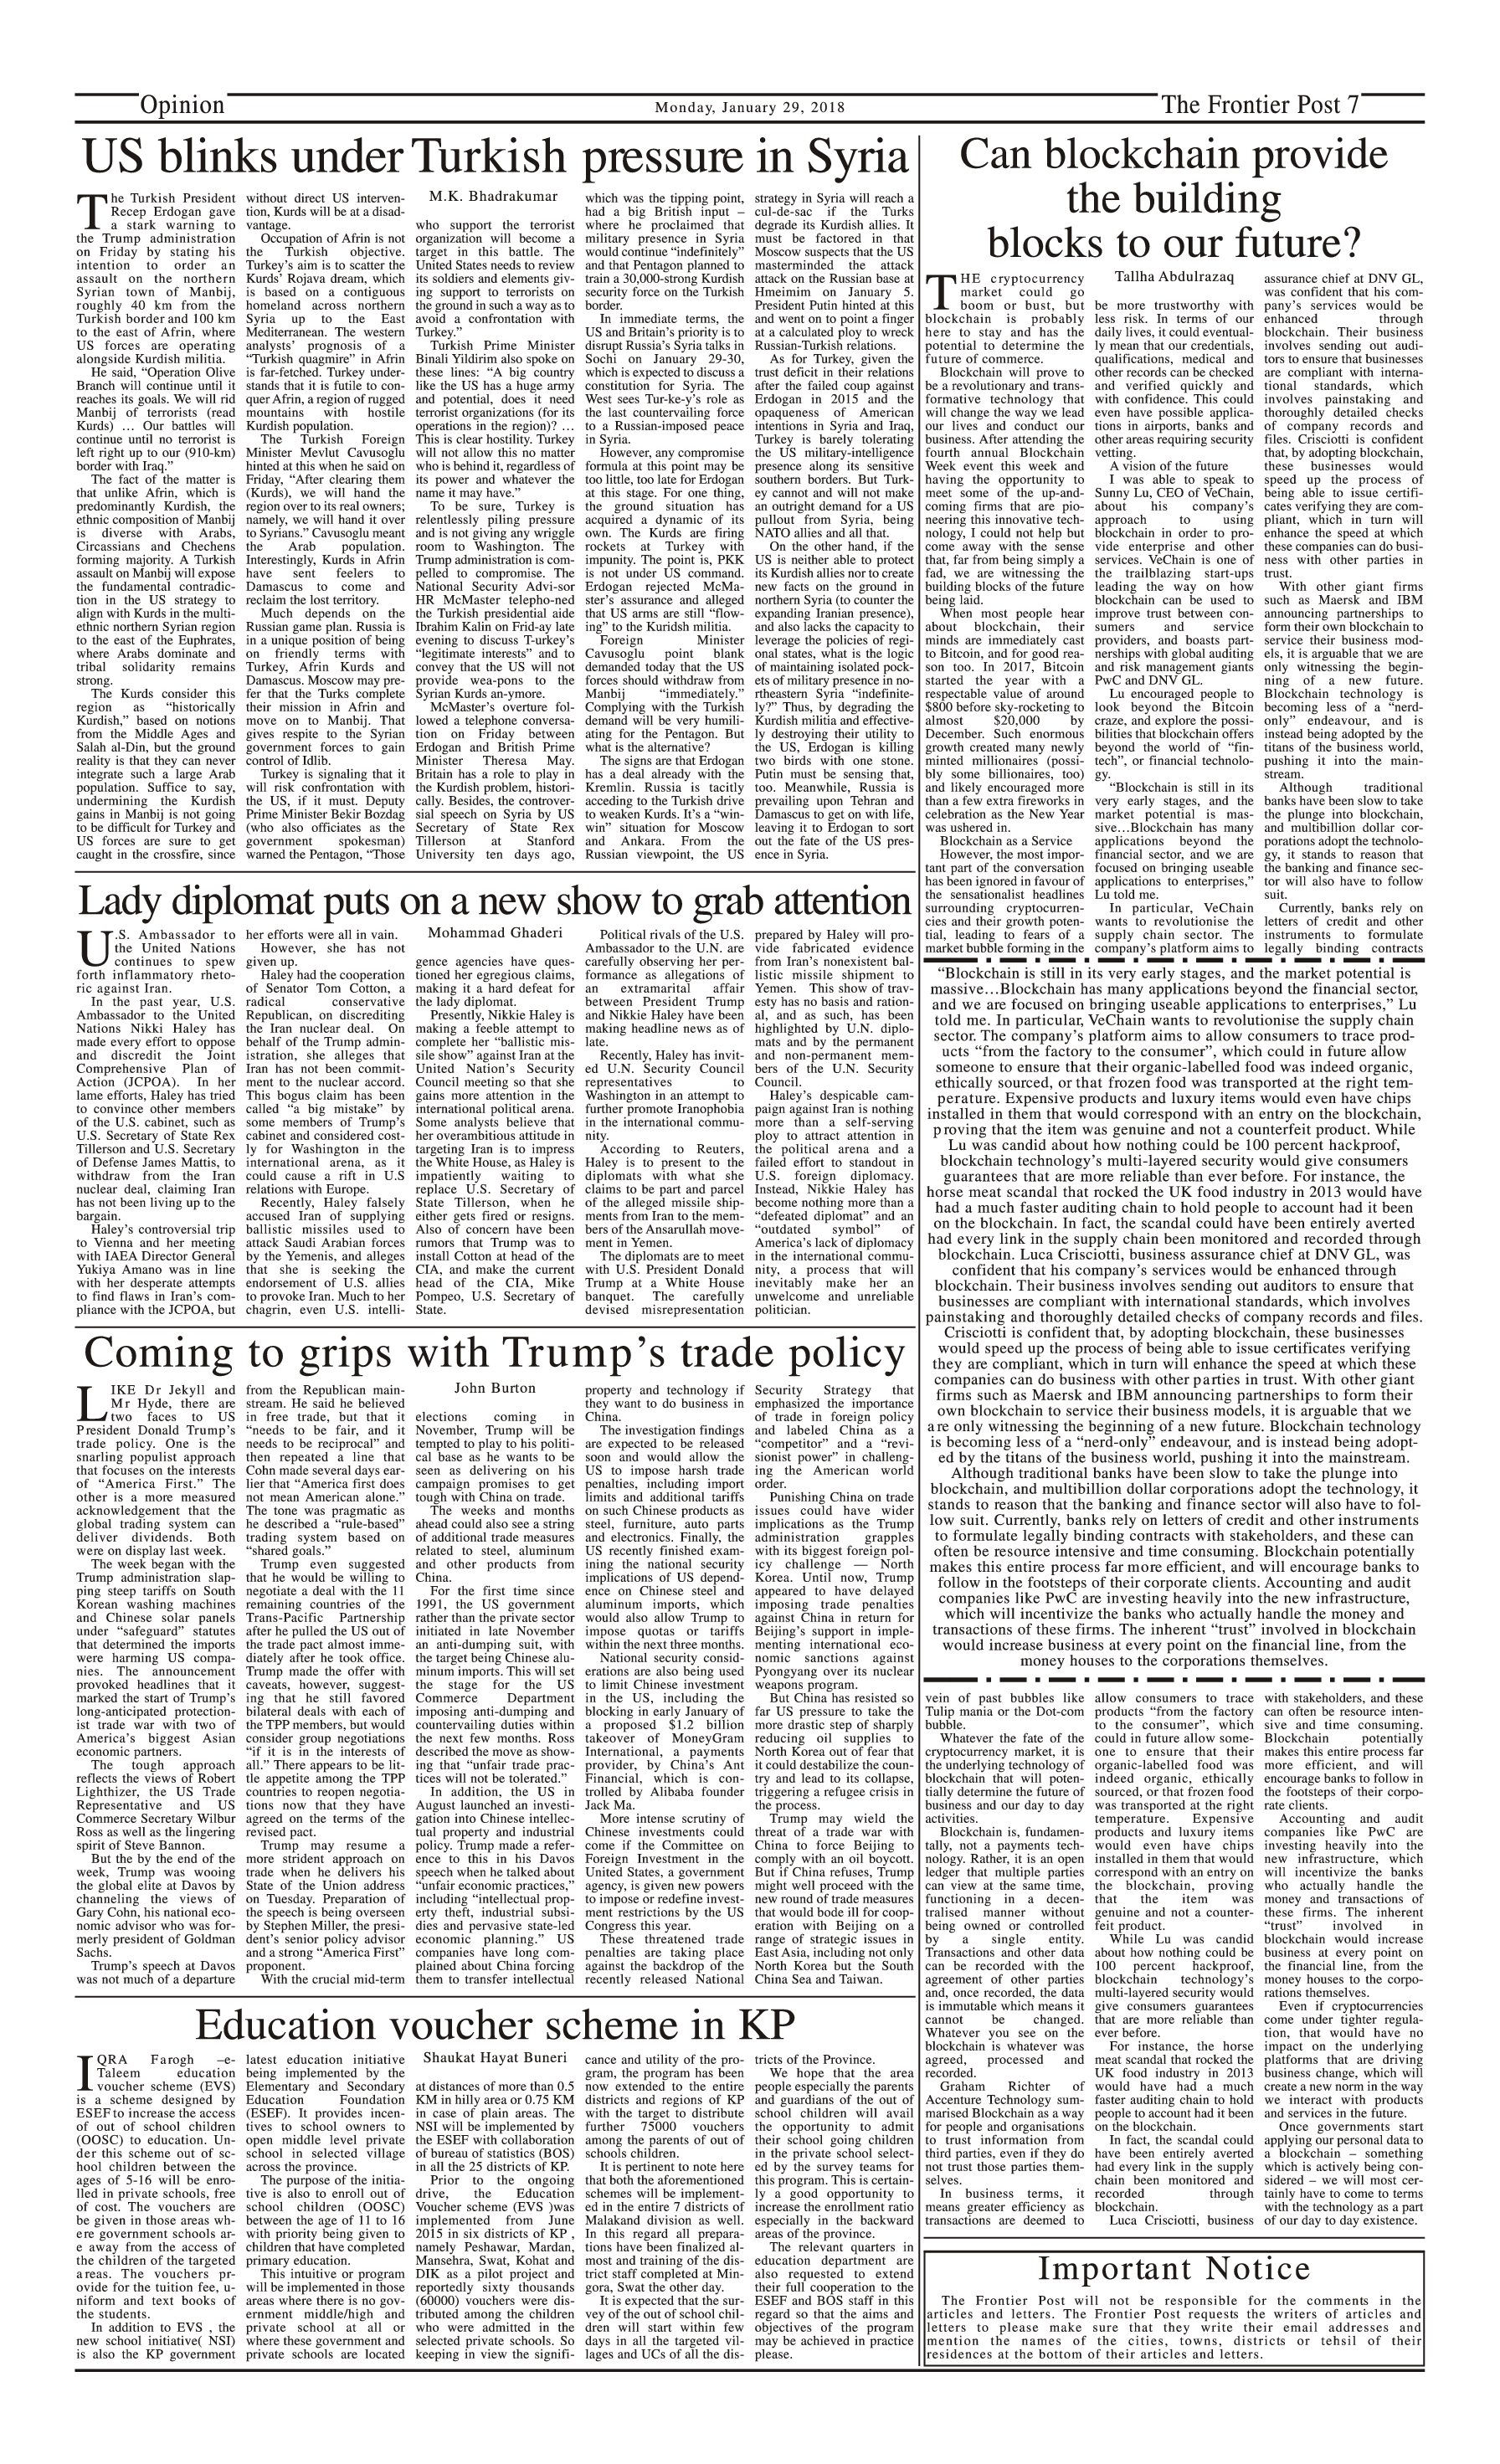 Opinion Page 29-1